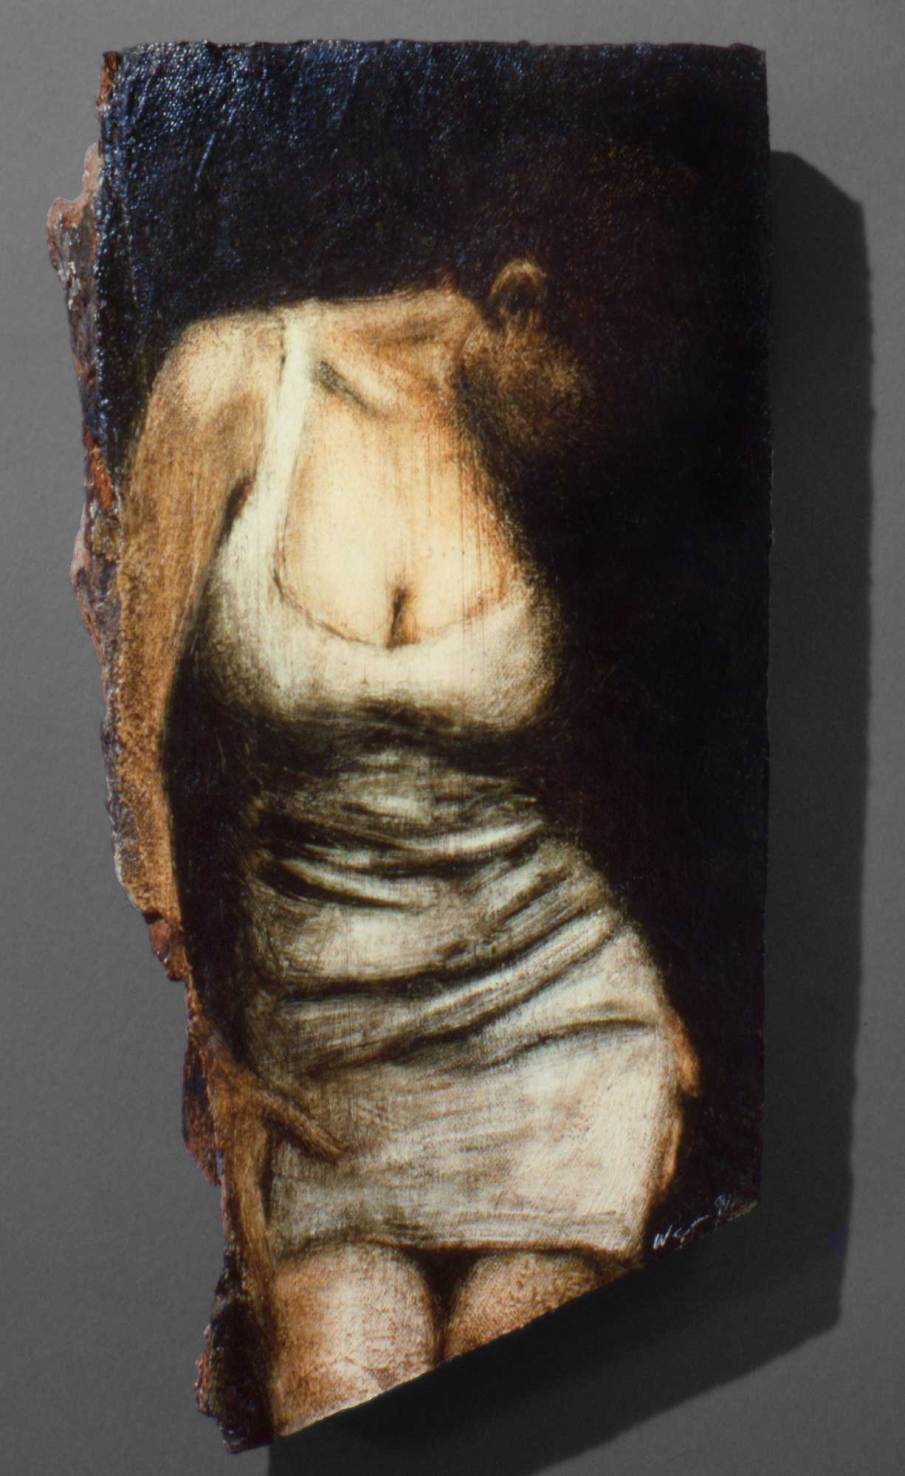 Woman, oil on wood, 10 inches tall, 191, private collection